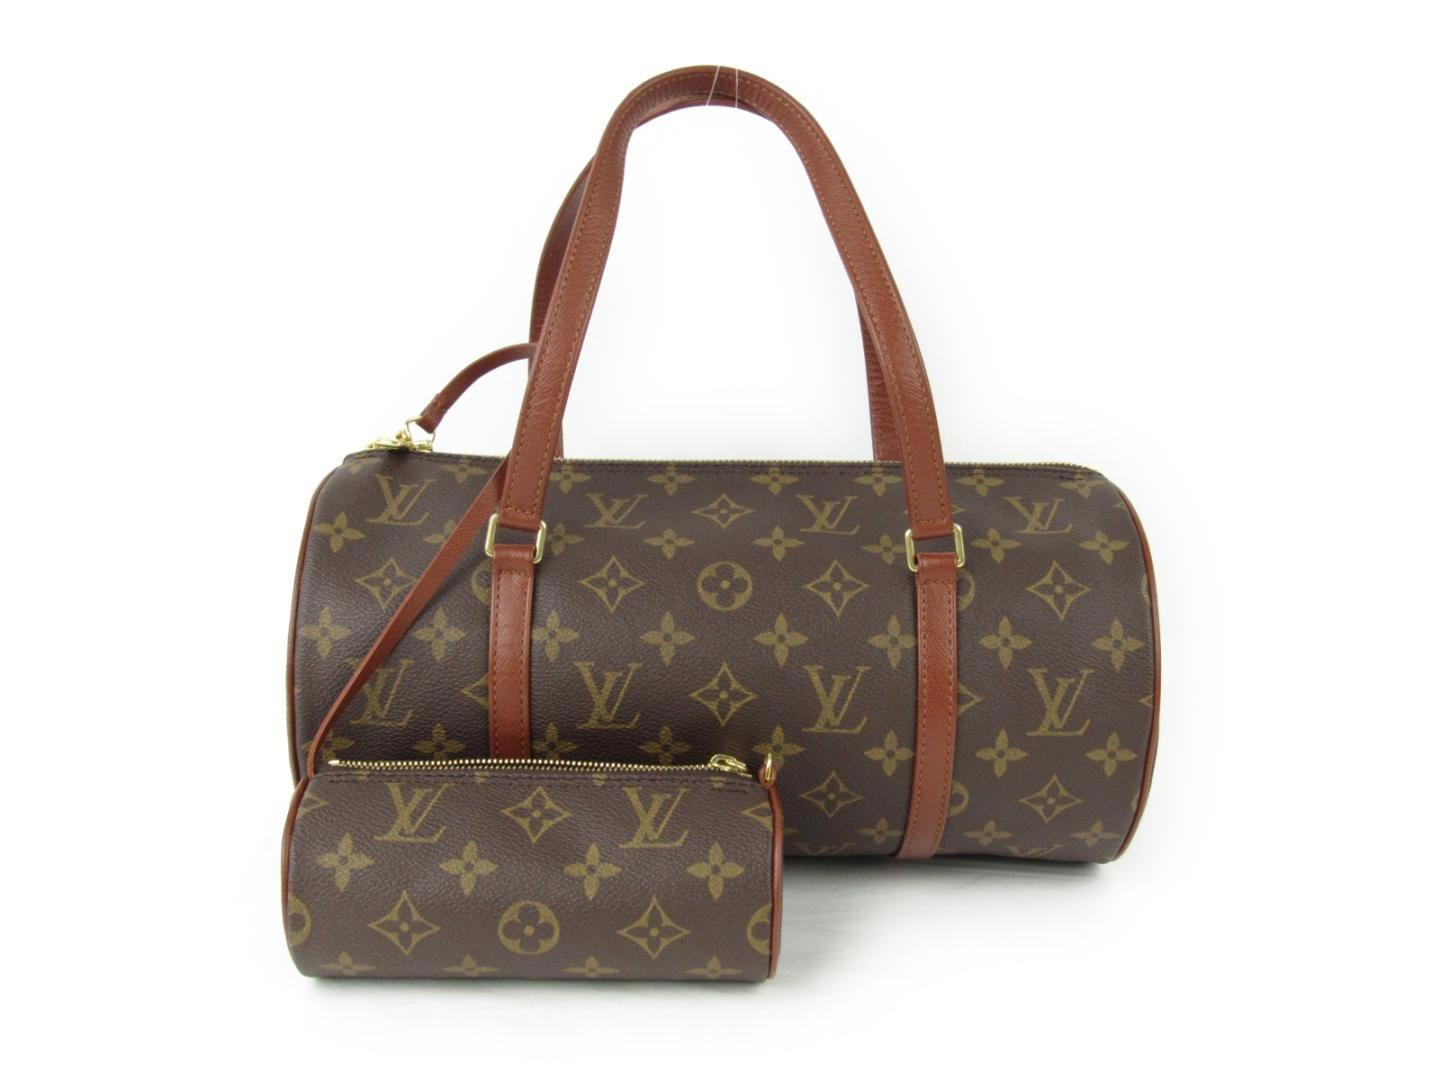 Vine And Pre Owned Louis Vuitton Whatgoesaroundnyc. Old Style Louis Vuitton  Handbags 490b9566dd465